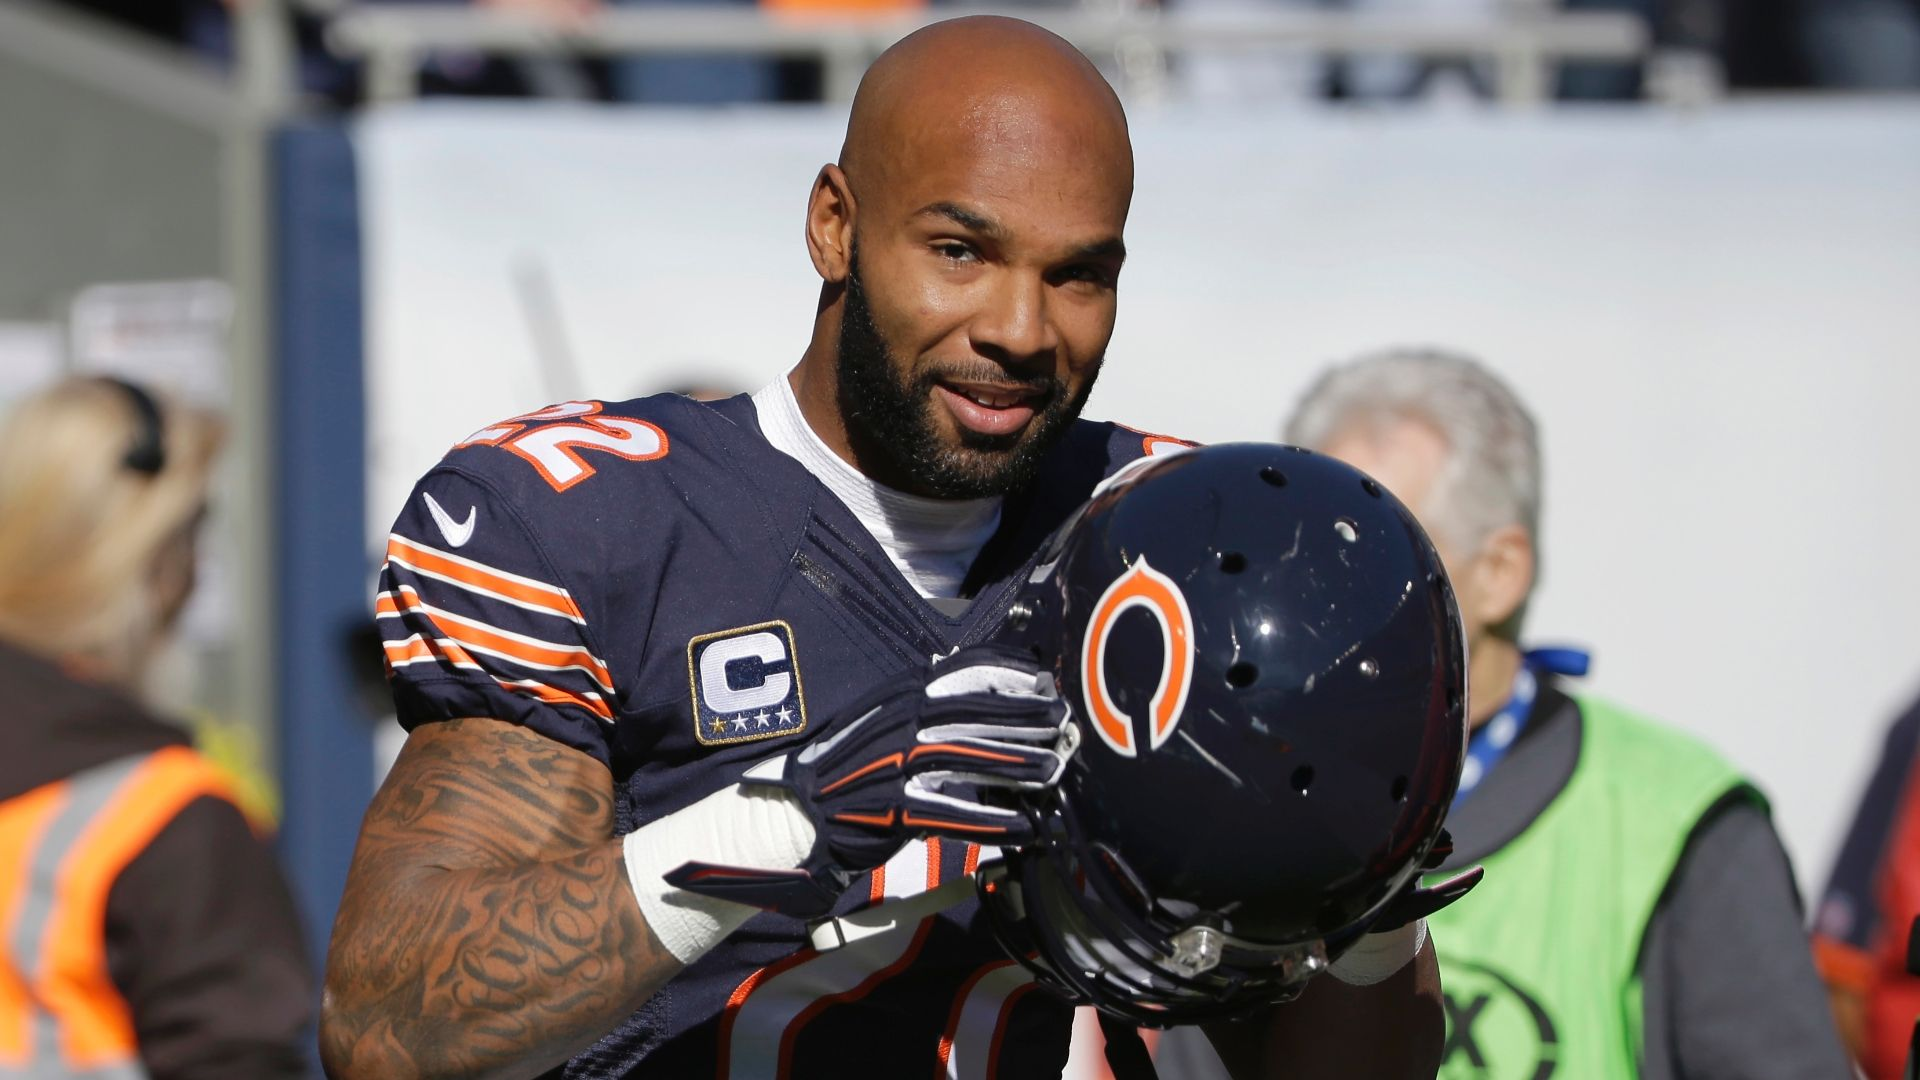 https://secure.espncdn.com/combiner/i?img=/media/motion/2016/0309/dm_160309_nfl_live_matt_forte_discussion/dm_160309_nfl_live_matt_forte_discussion.jpg